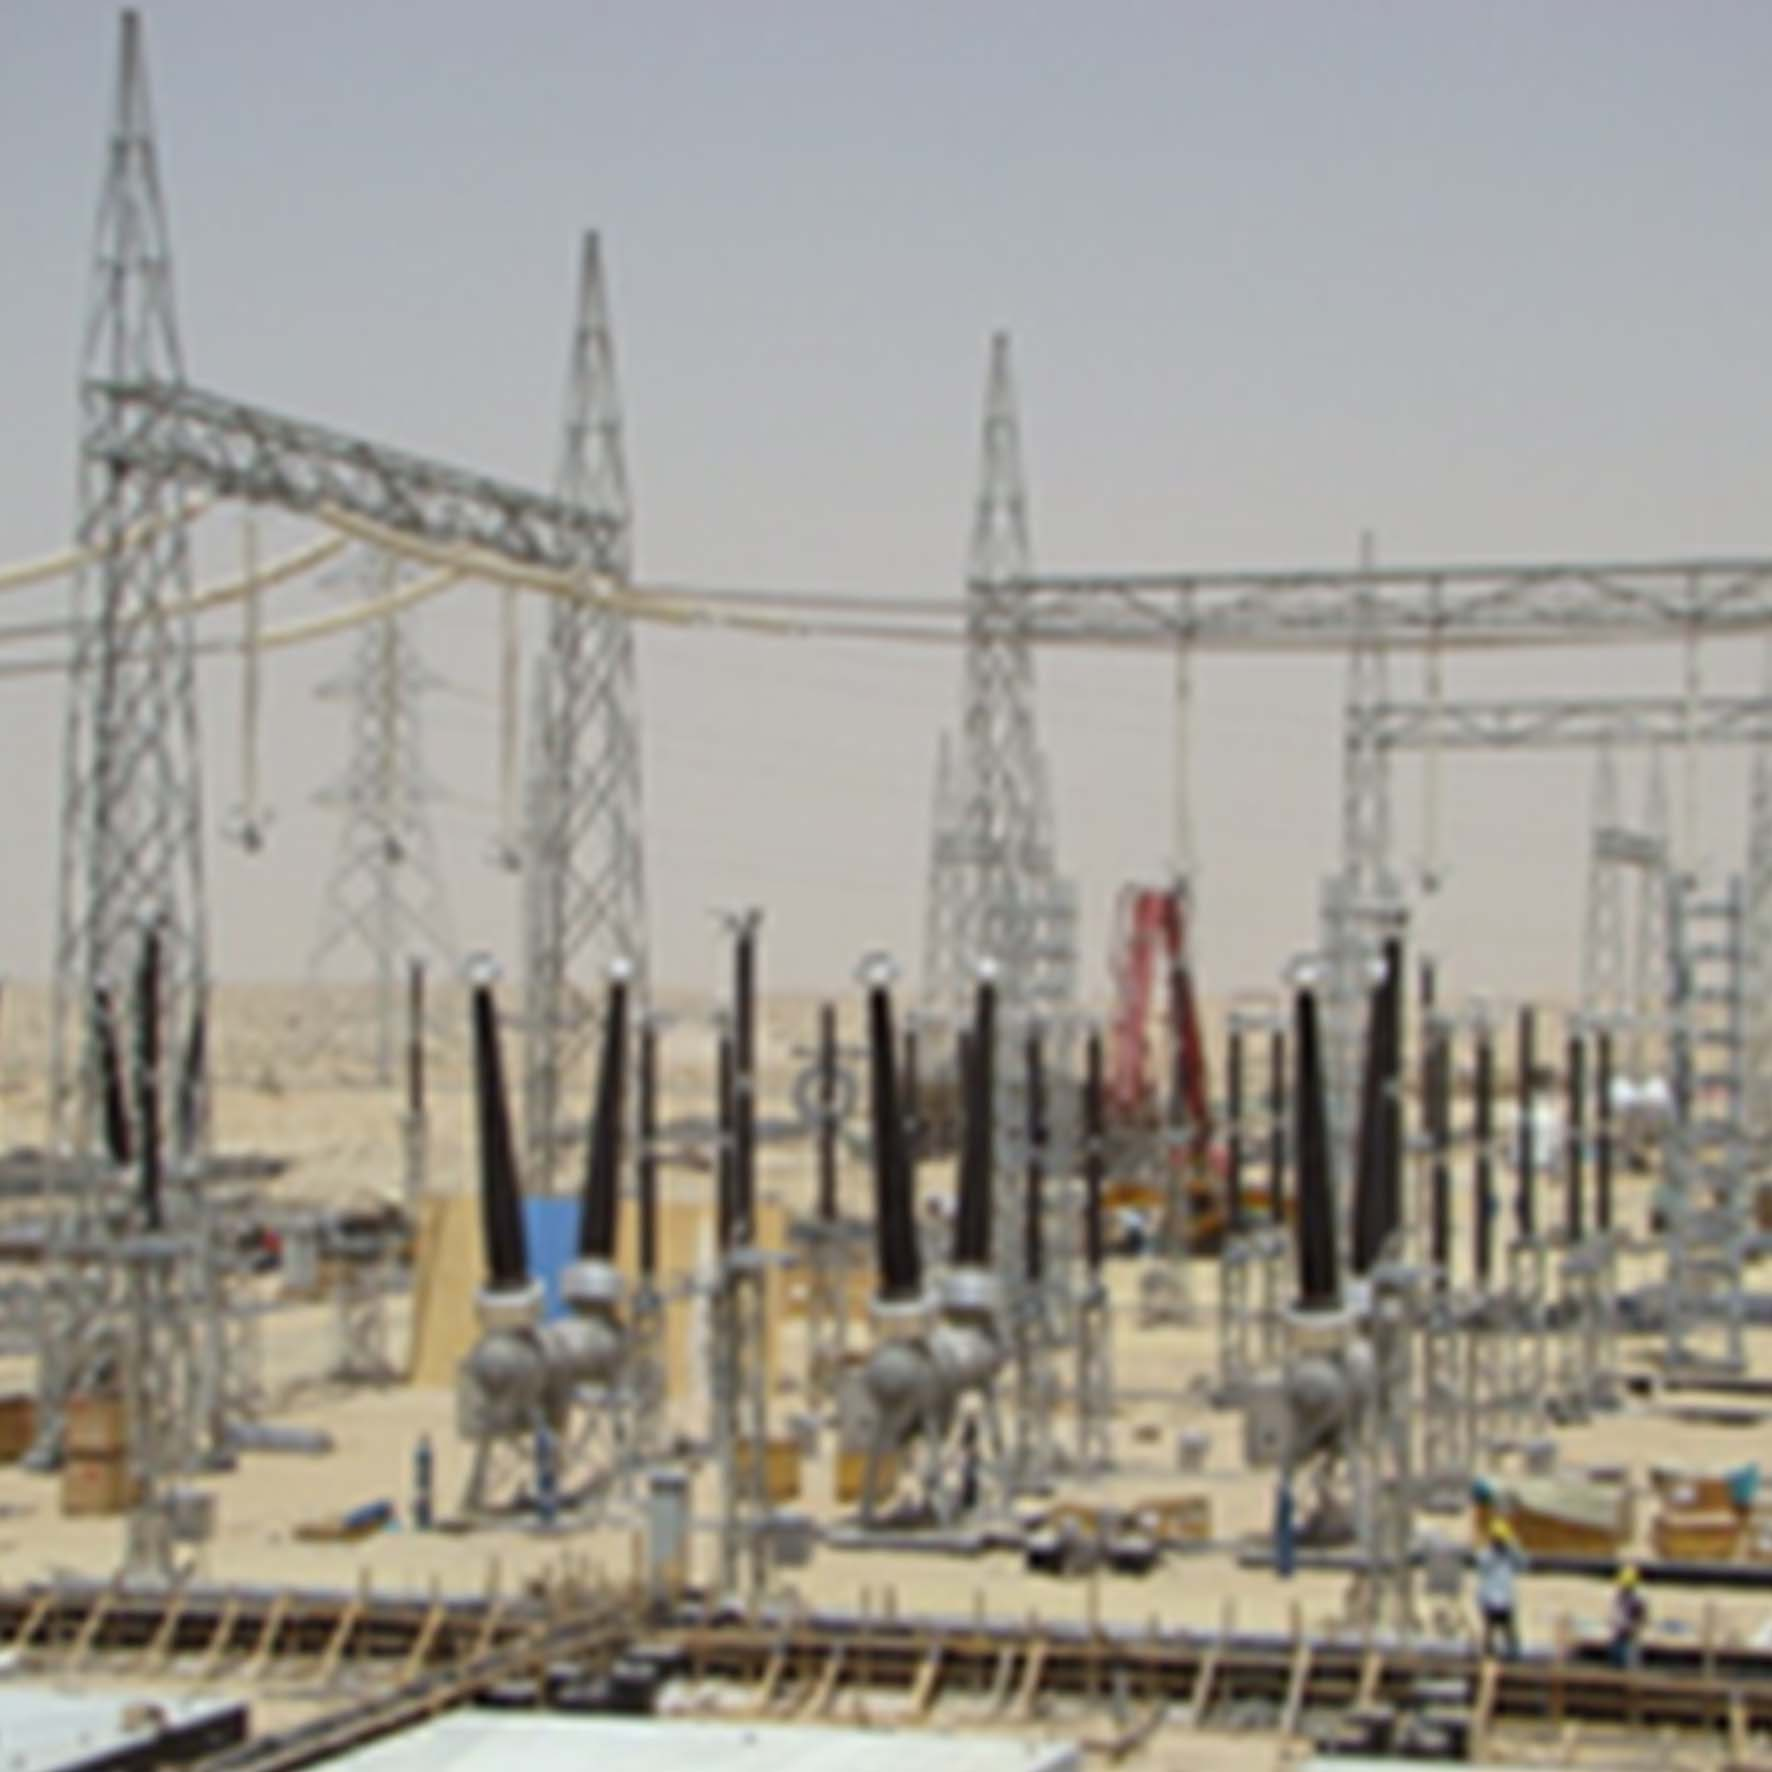 images/HVDC-converter-facility-bect-consulting.jpg